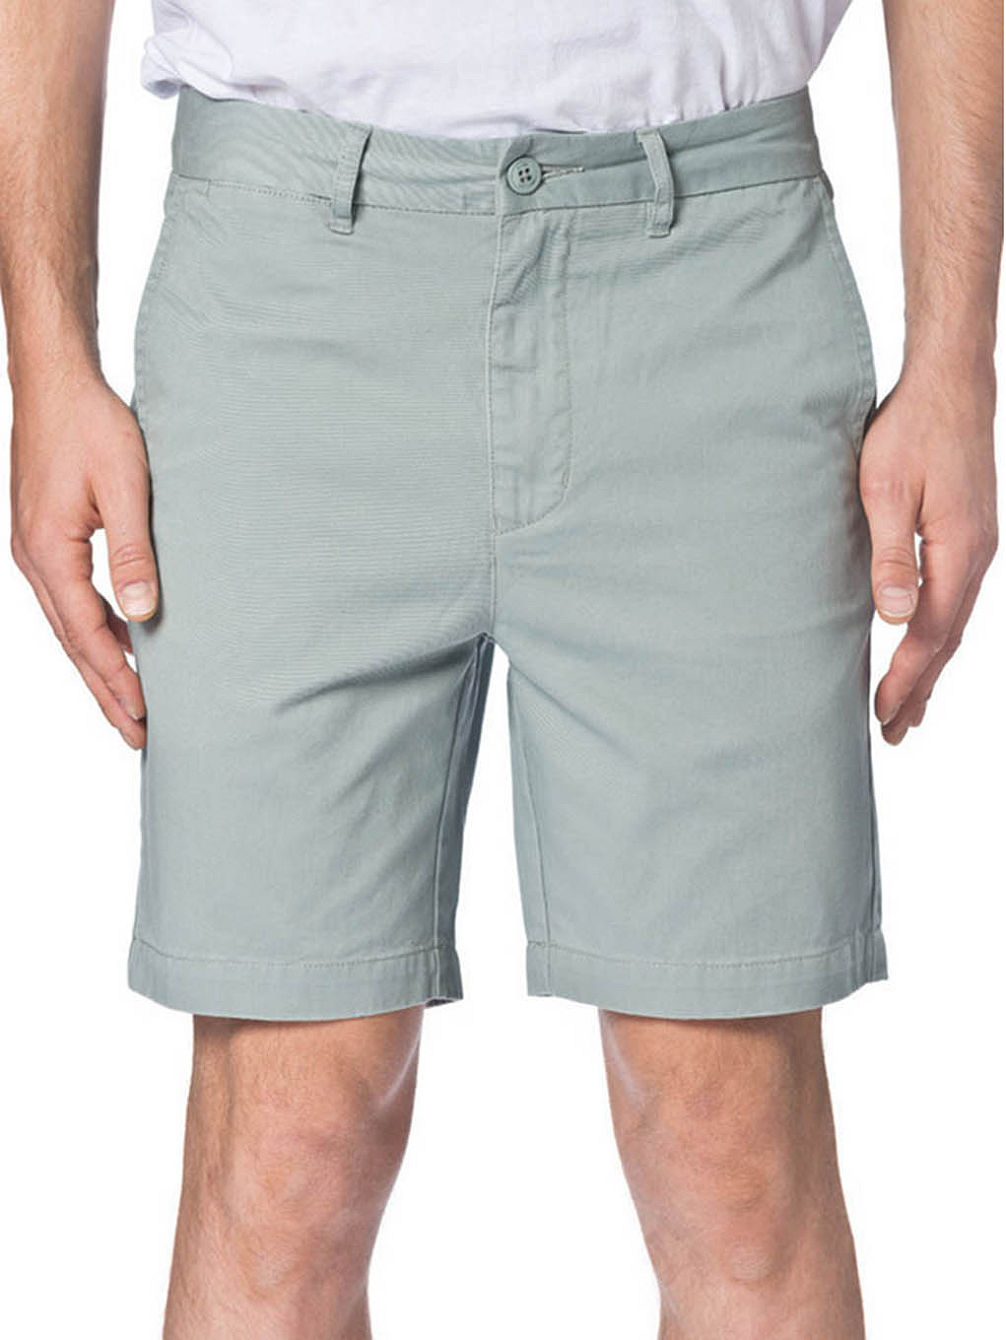 Goodstock Chino Walk Shorts